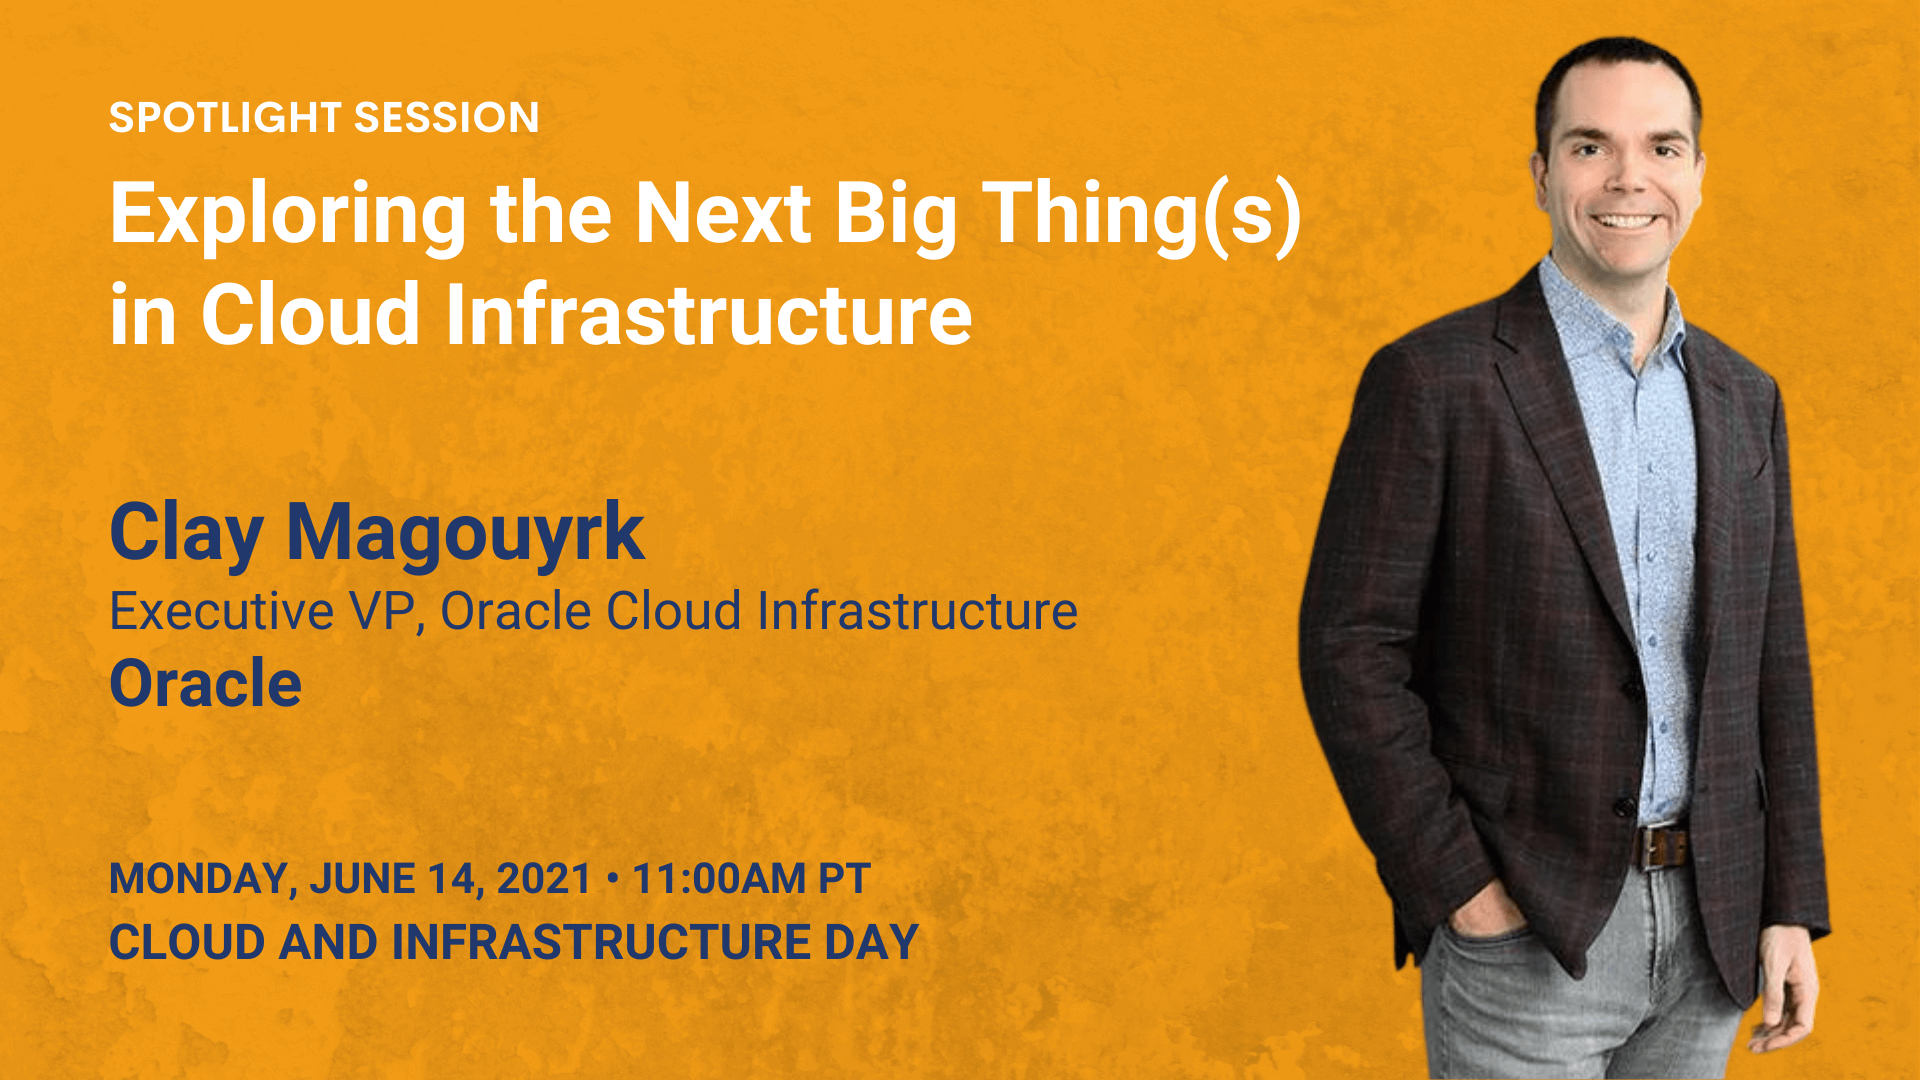 Over the past year, the pandemic clearly accelerated cloud adoption. In this session, Oracle EVP of OCI Clay Magouyrk will look ahead, discussing why businesses' need for flexibility will drive hybrid and multi-cloud deployments, as well as expanded use of machine learning and AI. Magouyrk will also address customers' remaining concerns about cost and complexity, and how Oracle can alleviate those worries with more deployment choice, better economics, and an easier migration path. (ClayMagouyrk)